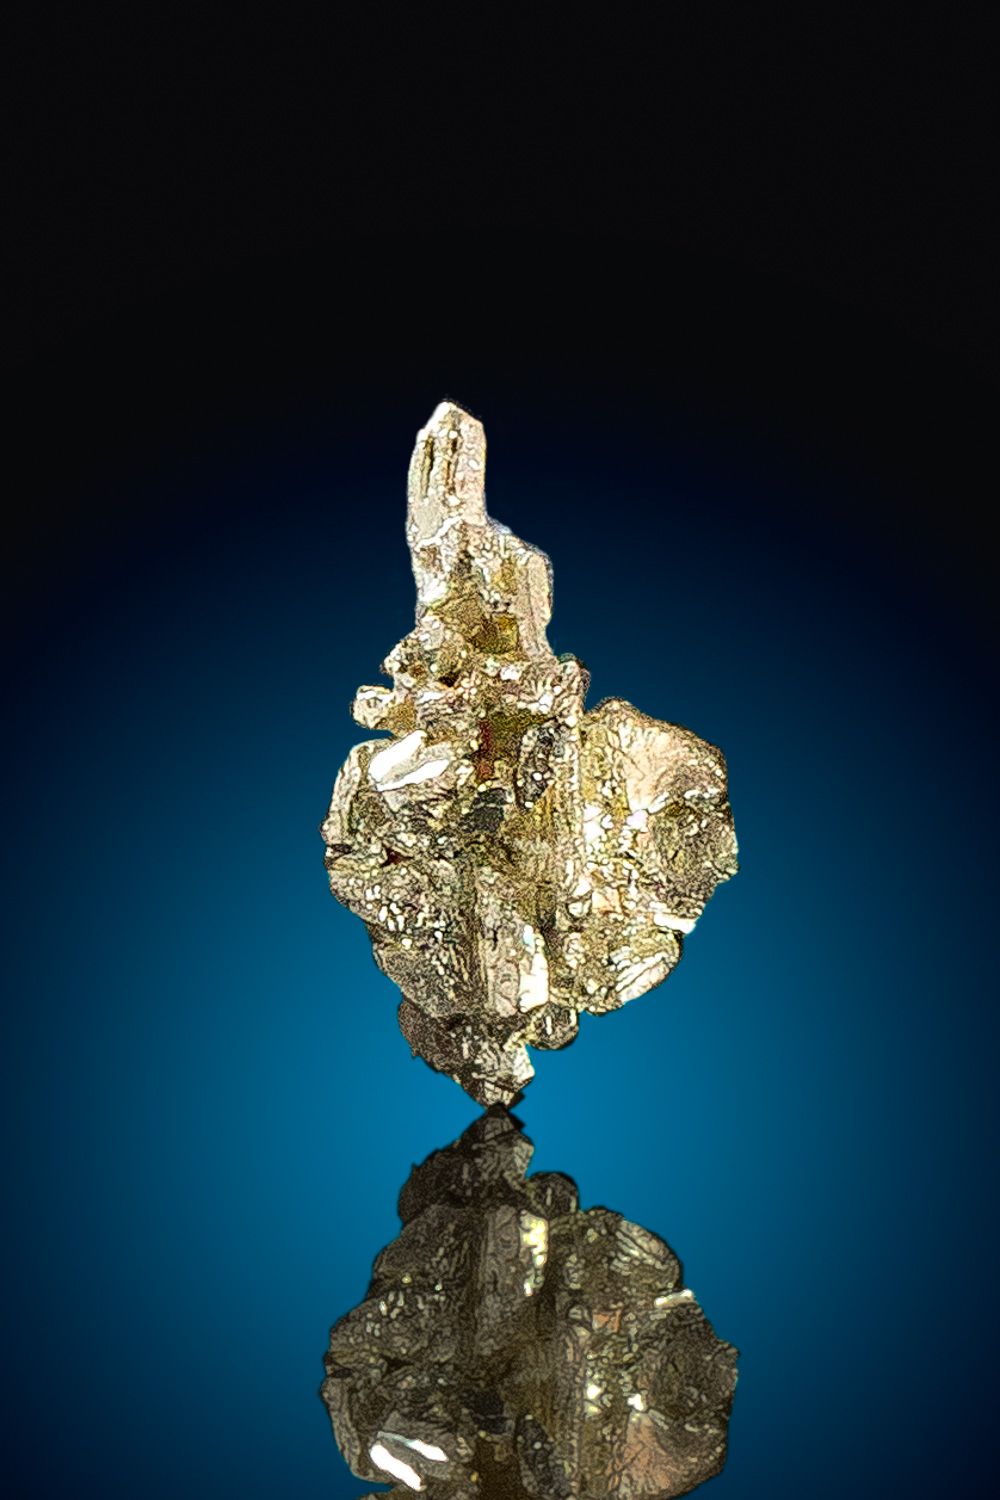 Sharp Gold crystal from Fire Creek Gold Mine, Nevada